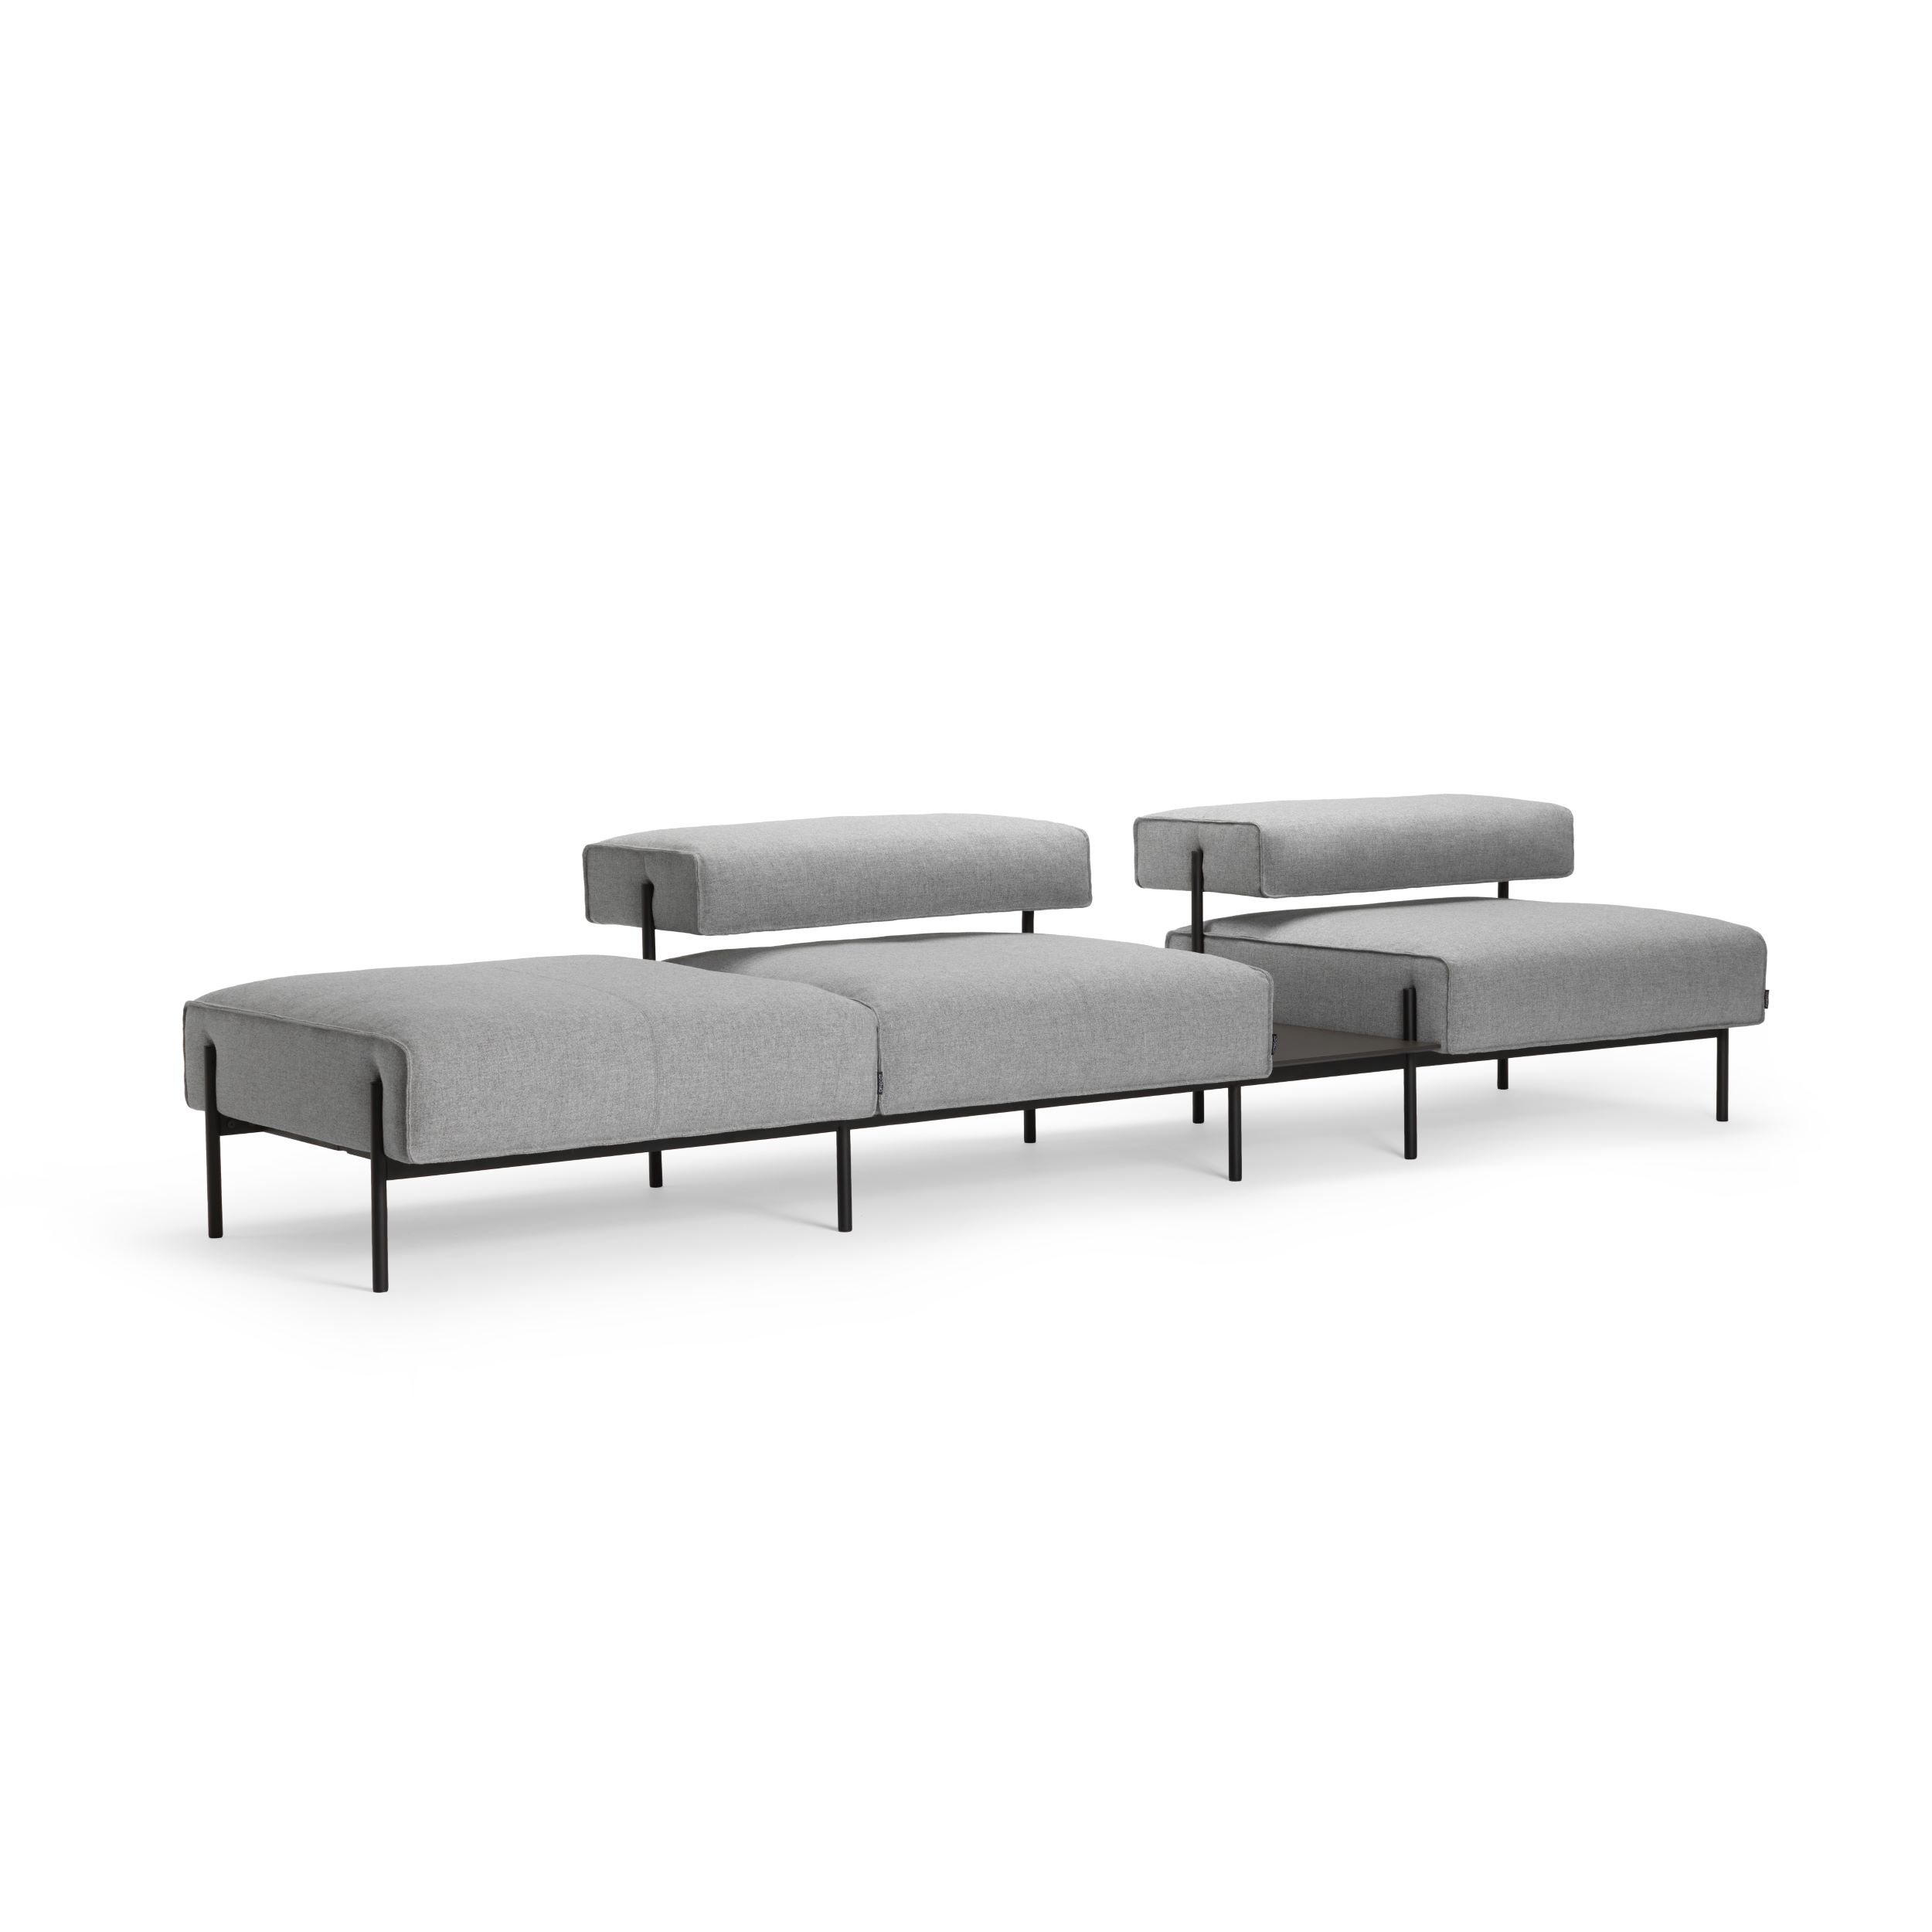 Lucy, H37/h73 | Offecct Pertaining To Lucy Dark Grey Sofa Chairs (View 9 of 20)